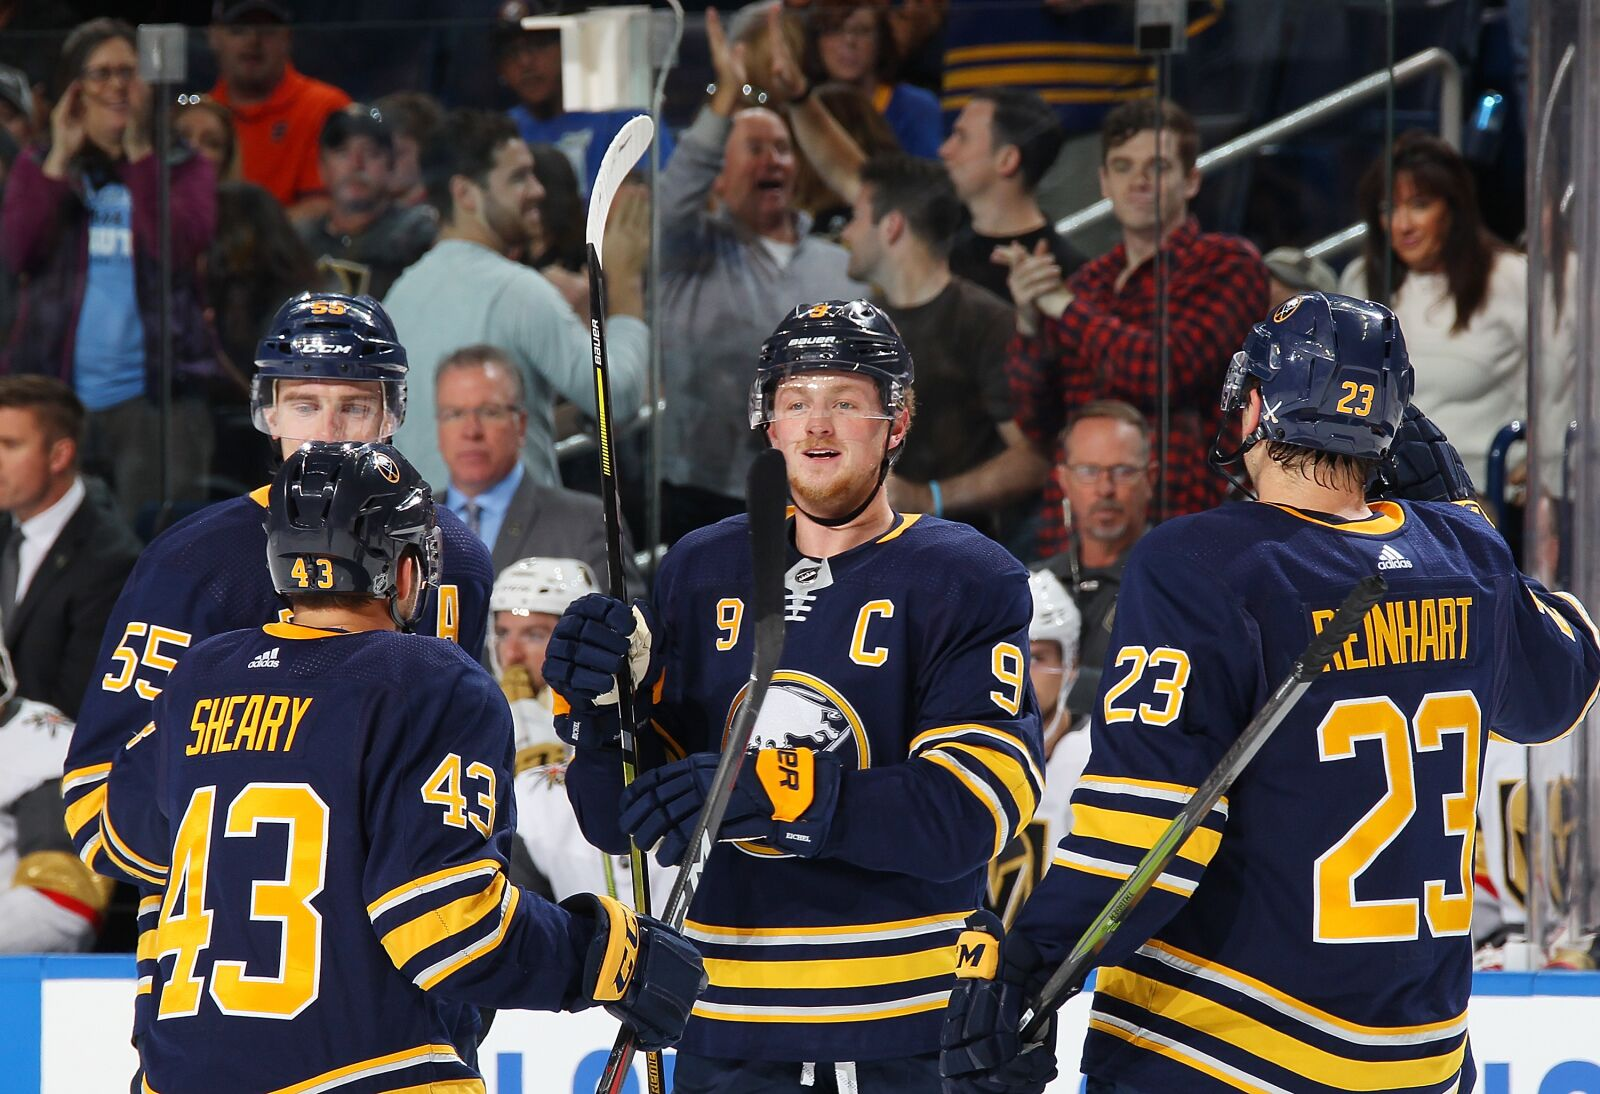 Buffalo Sabres: Homestand ends with matchup against Colorado